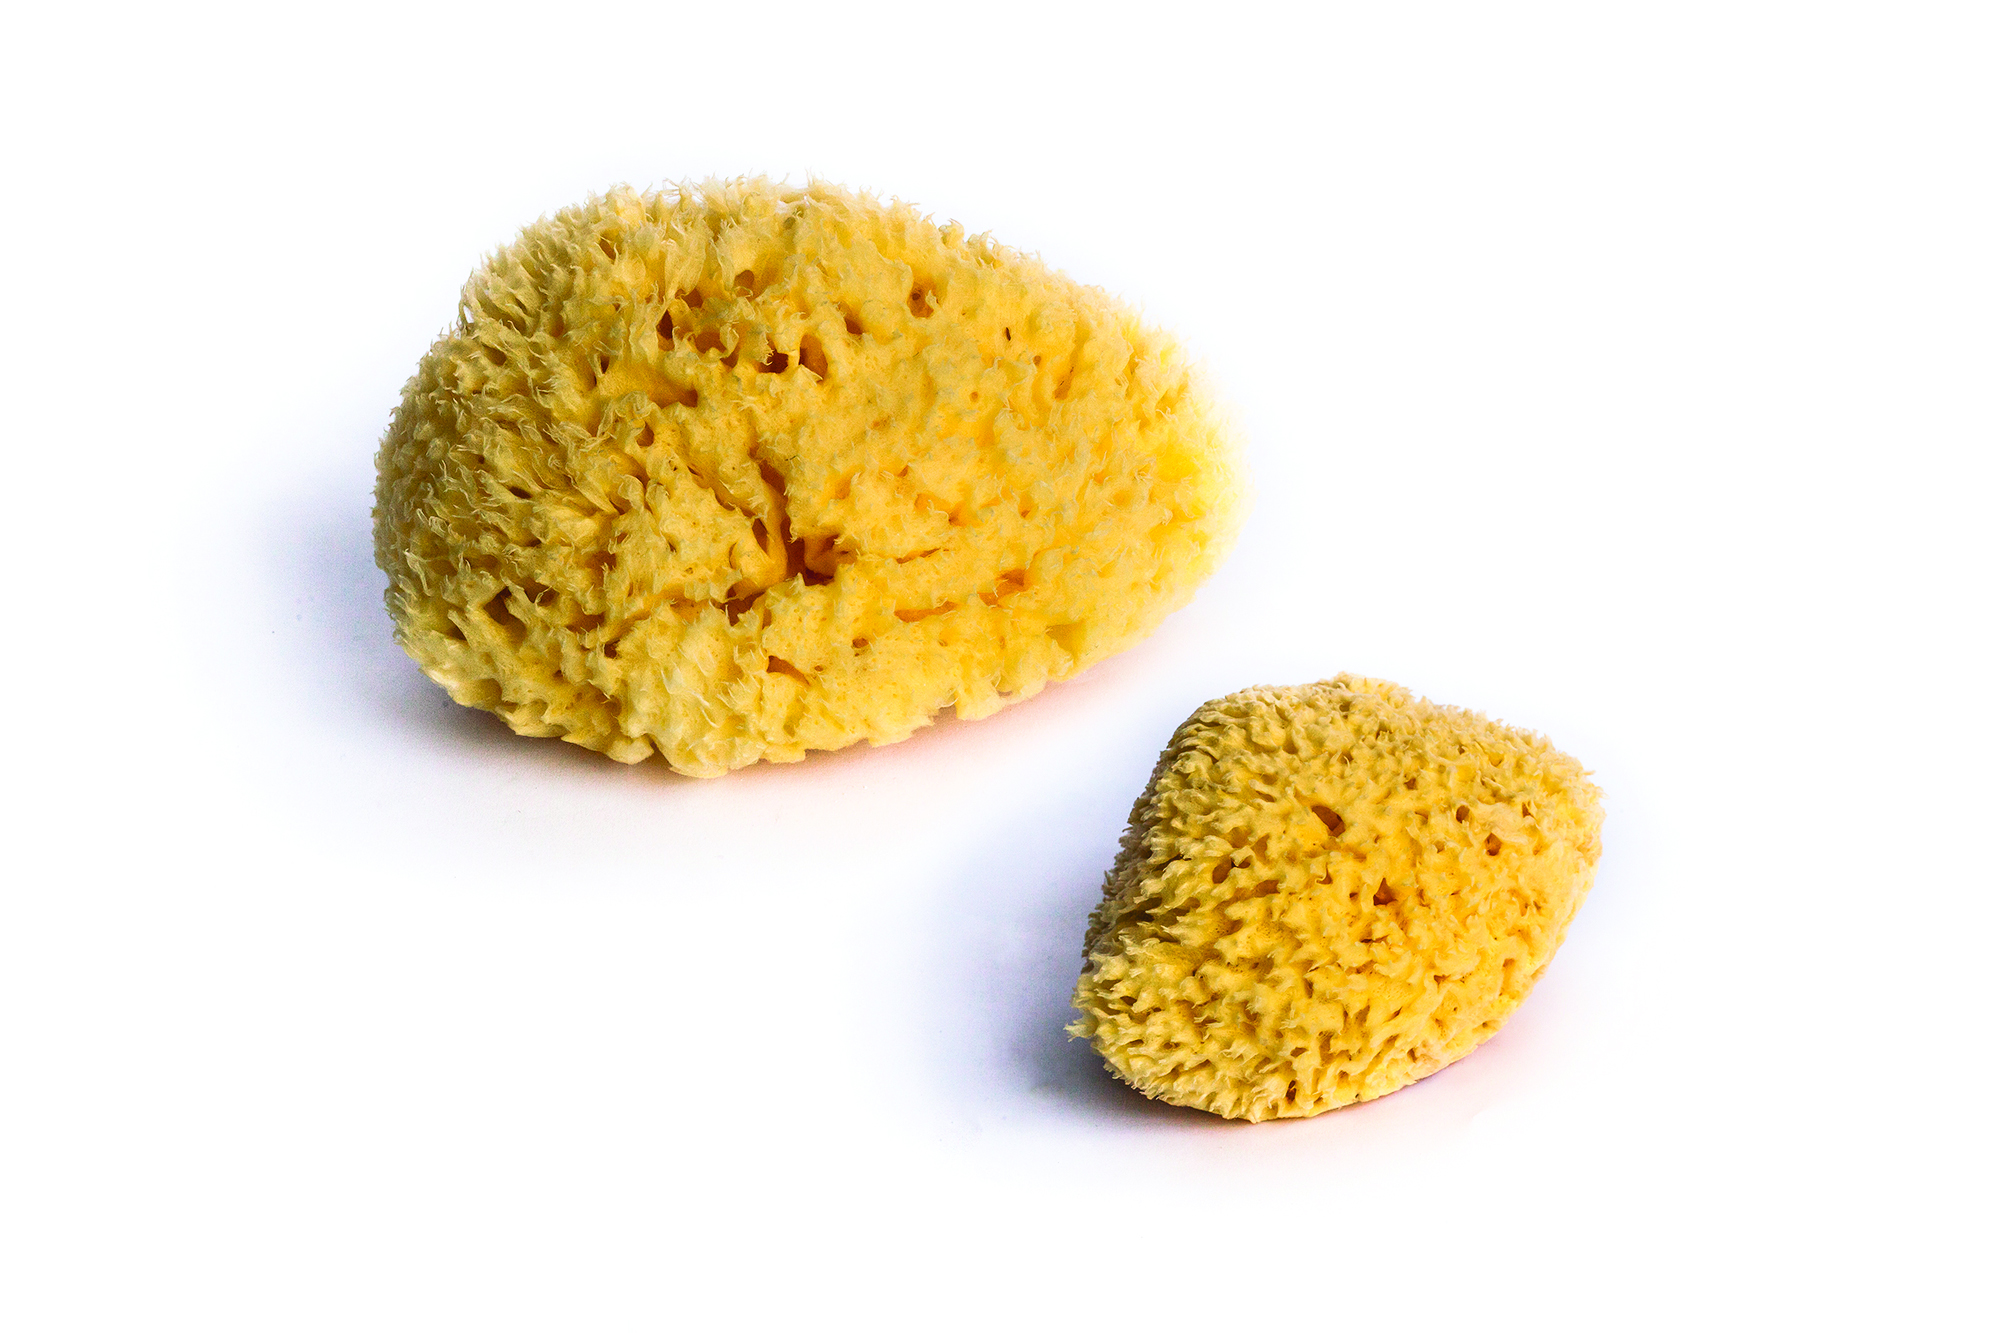 LOT OF 2 NATURAL SPONGES